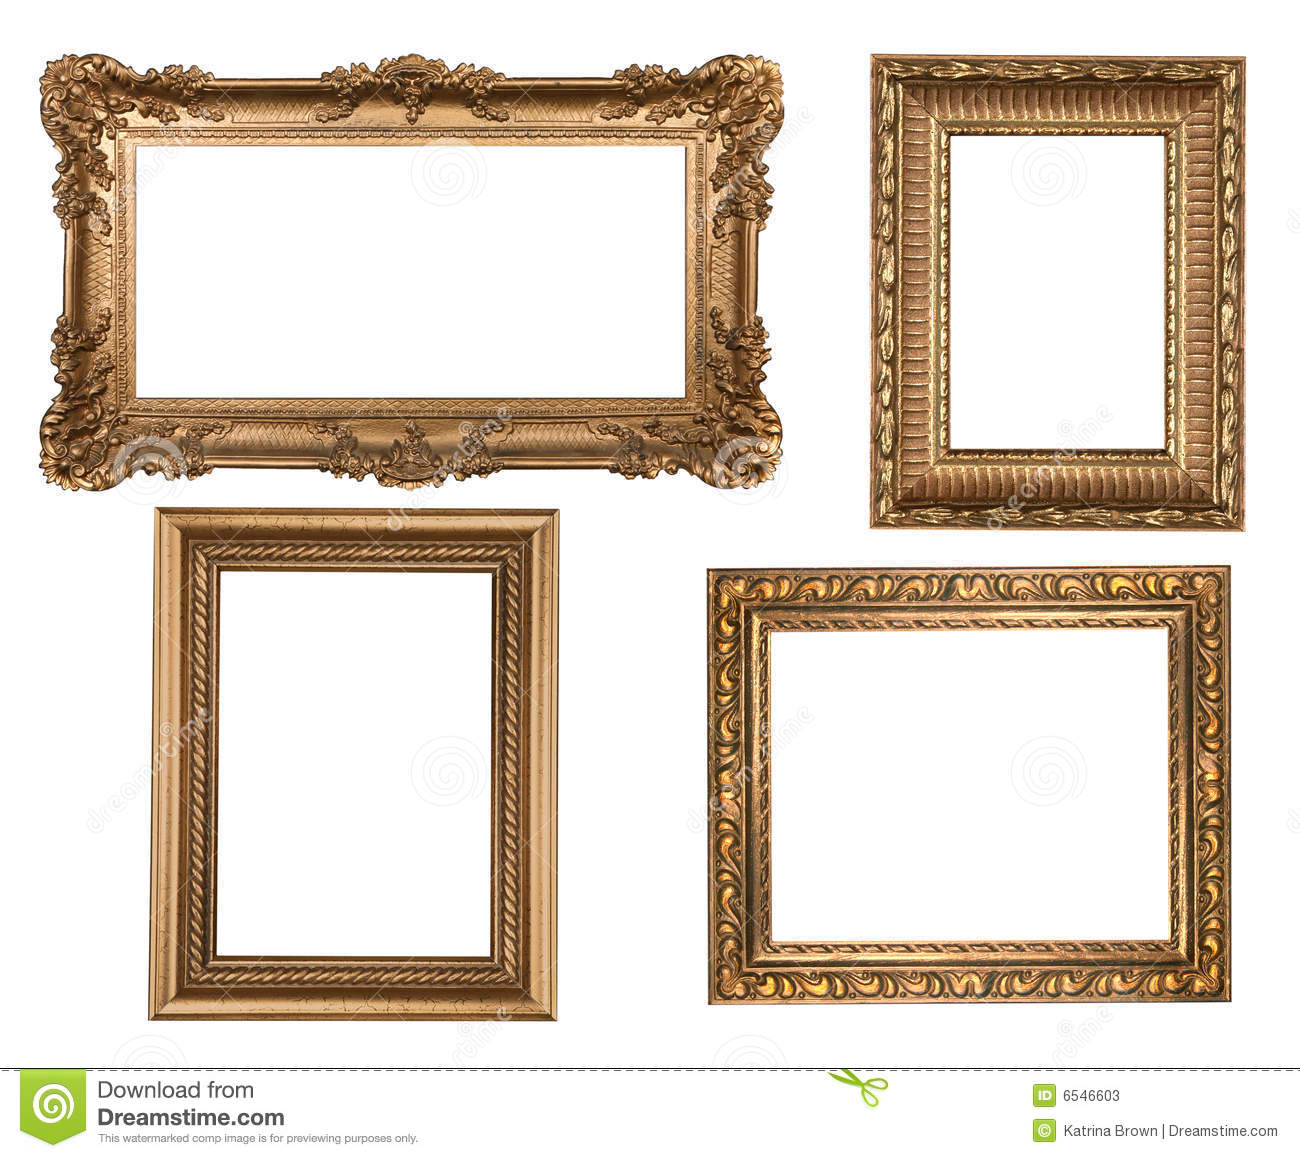 Vintage Detailed Gold Empty Picure Frames Stock Image - Image of ...